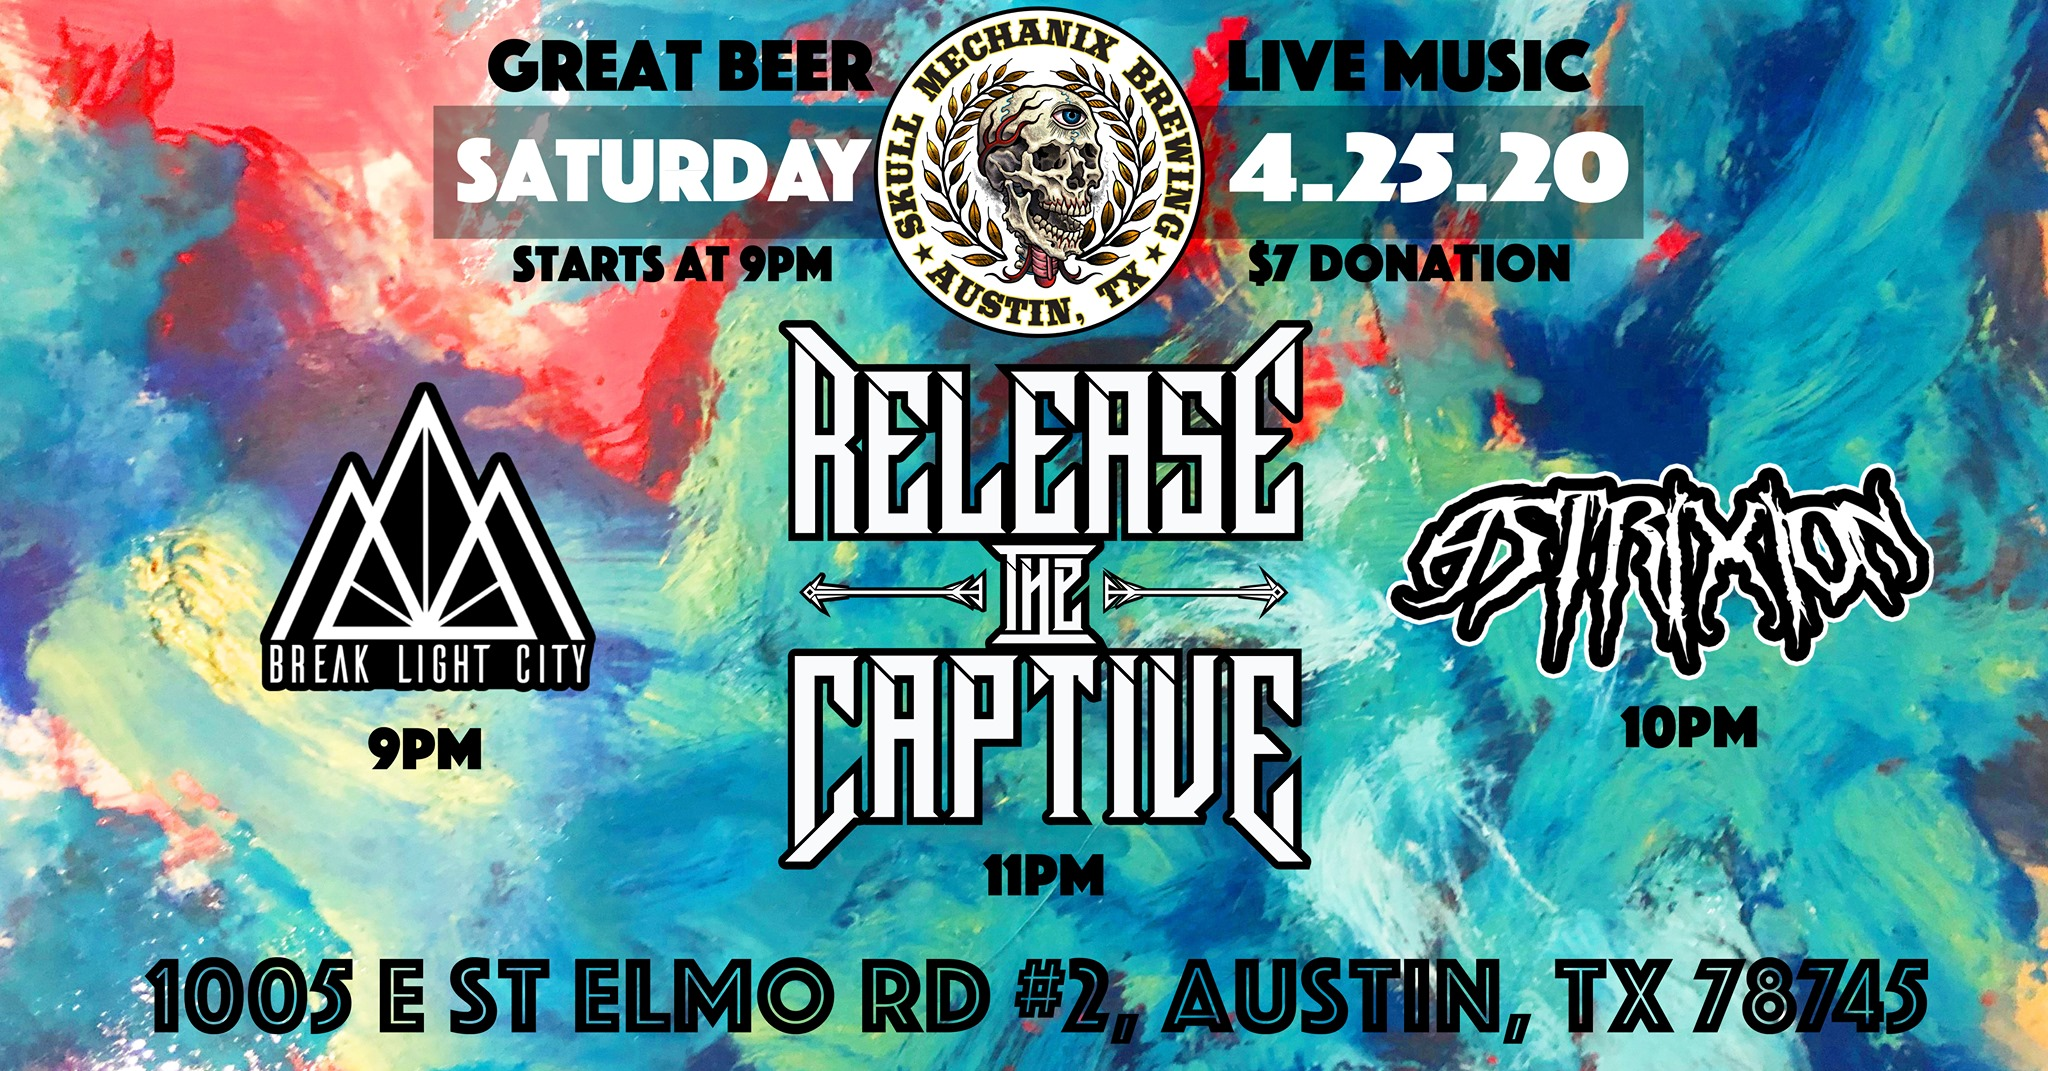 Release the Captive w/ Astrixion and Break Light City